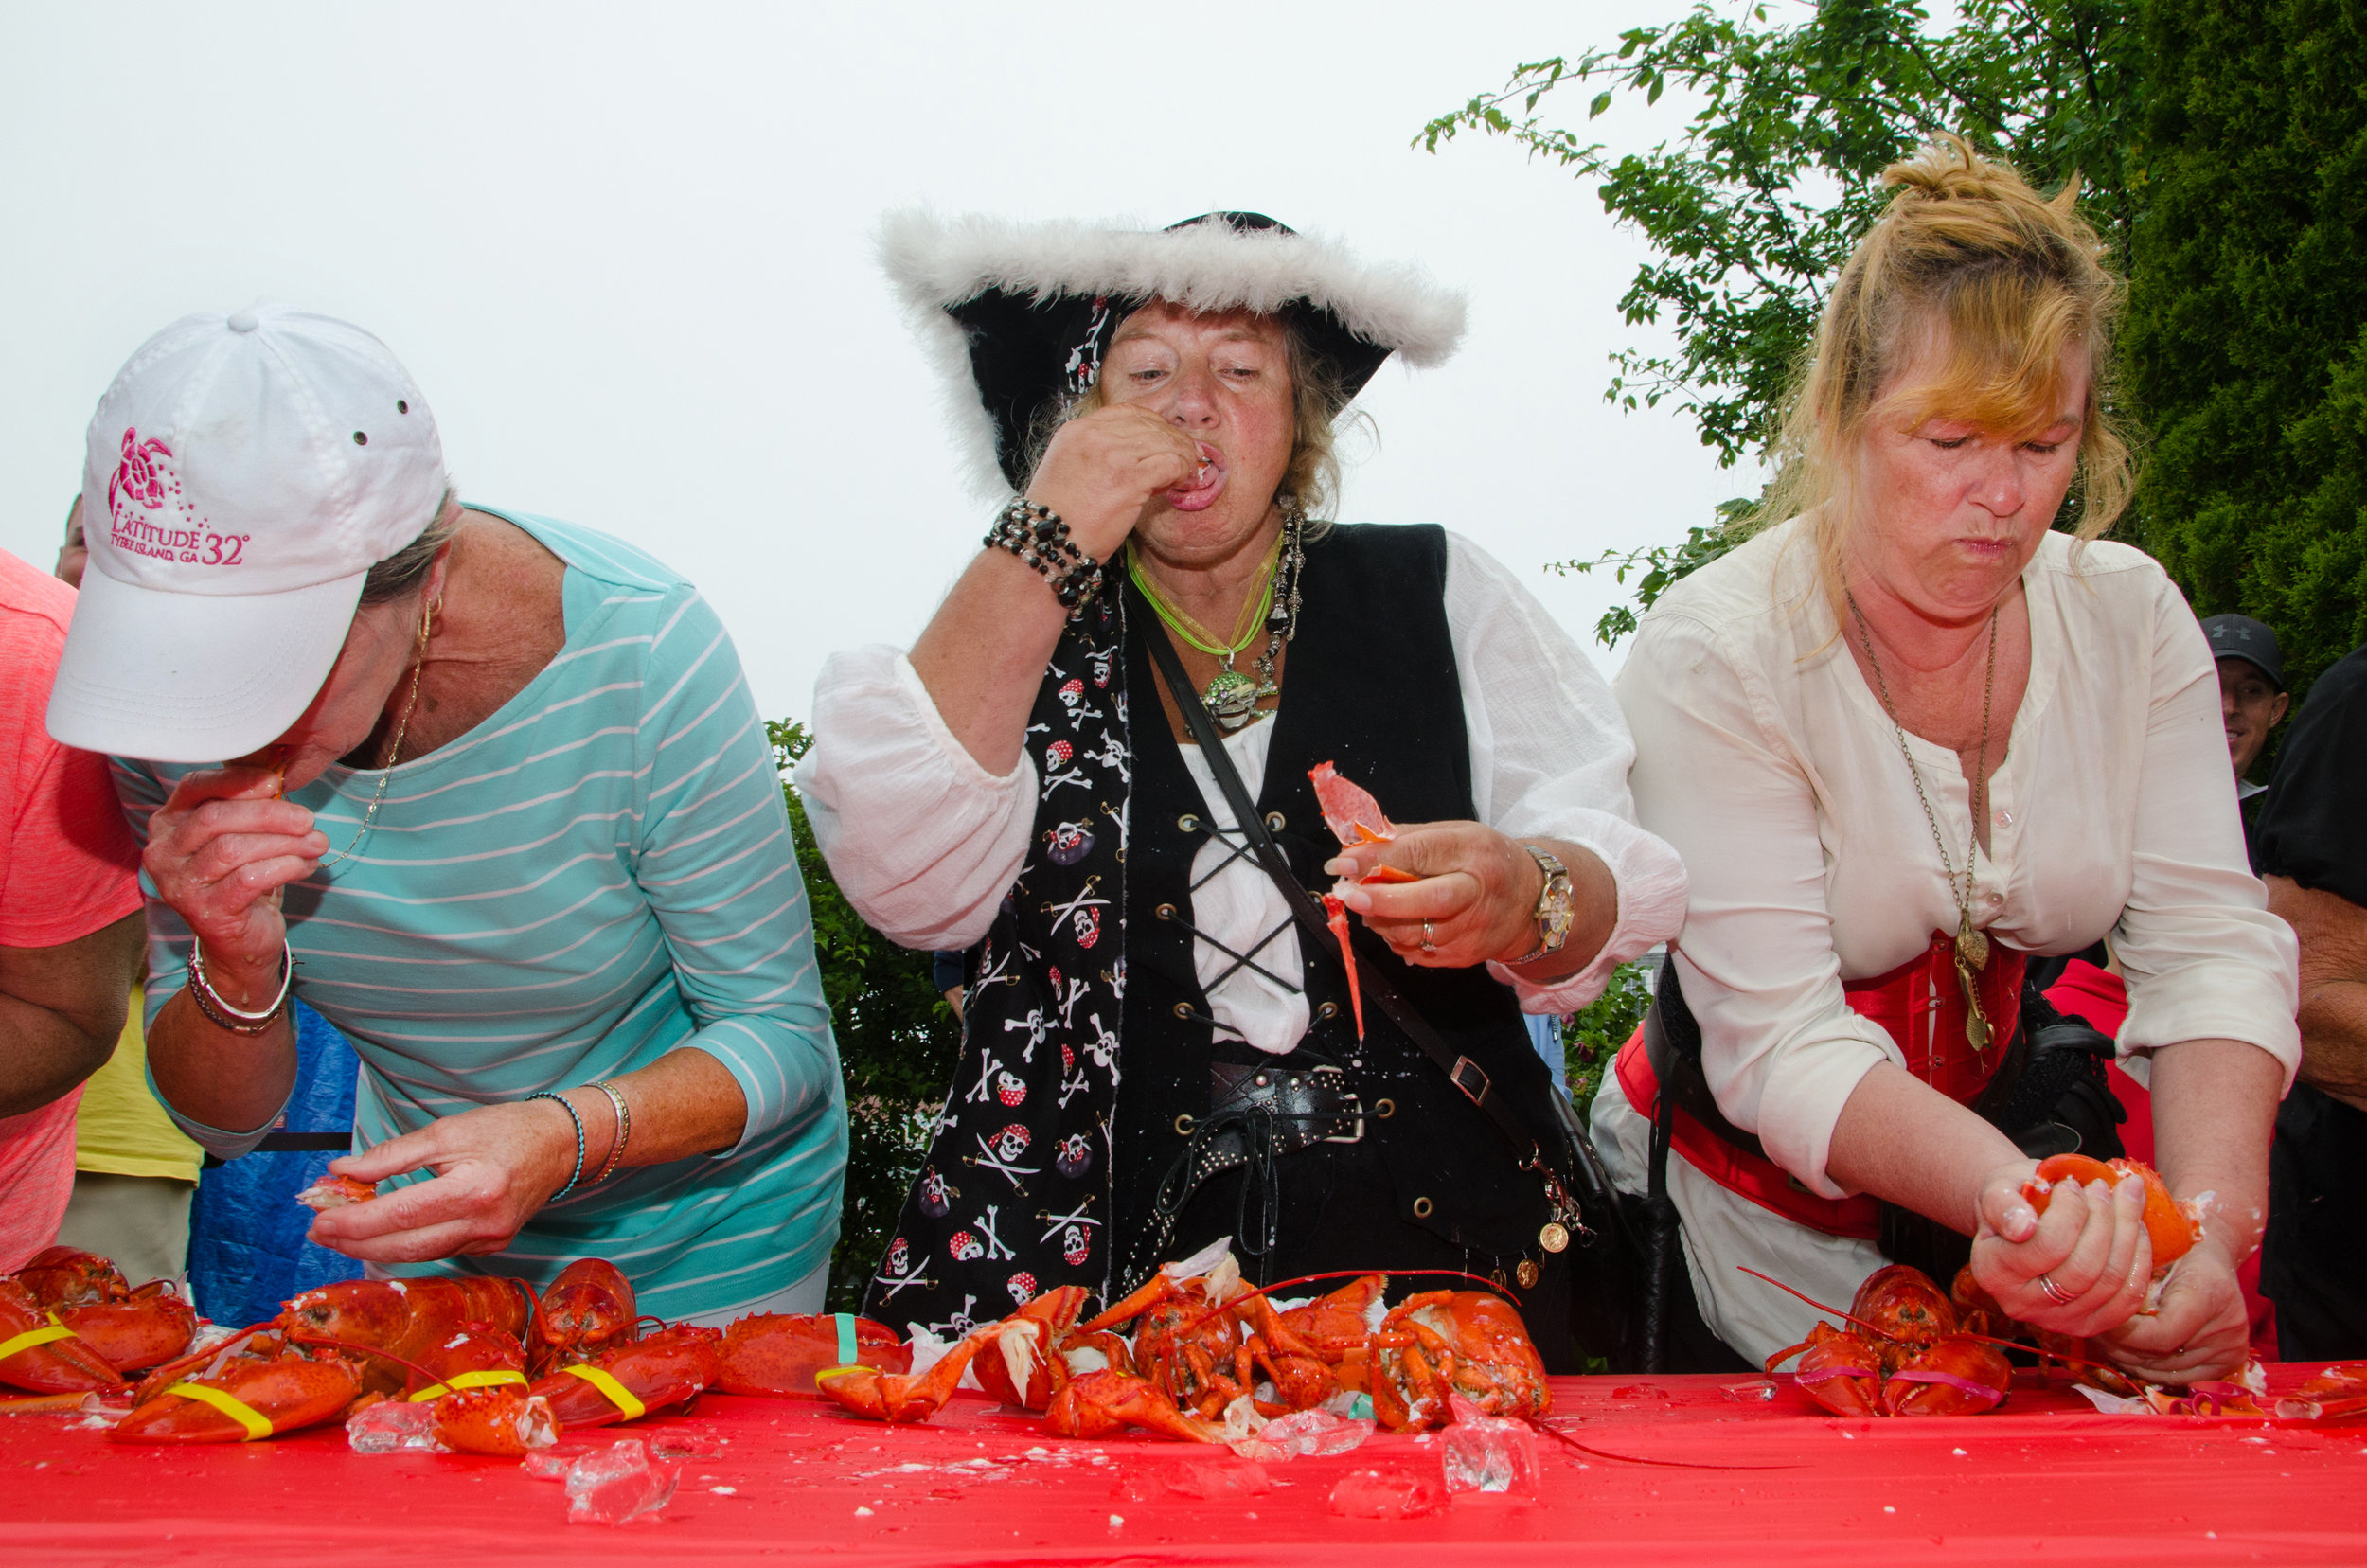 Lobster Eating-1.jpg